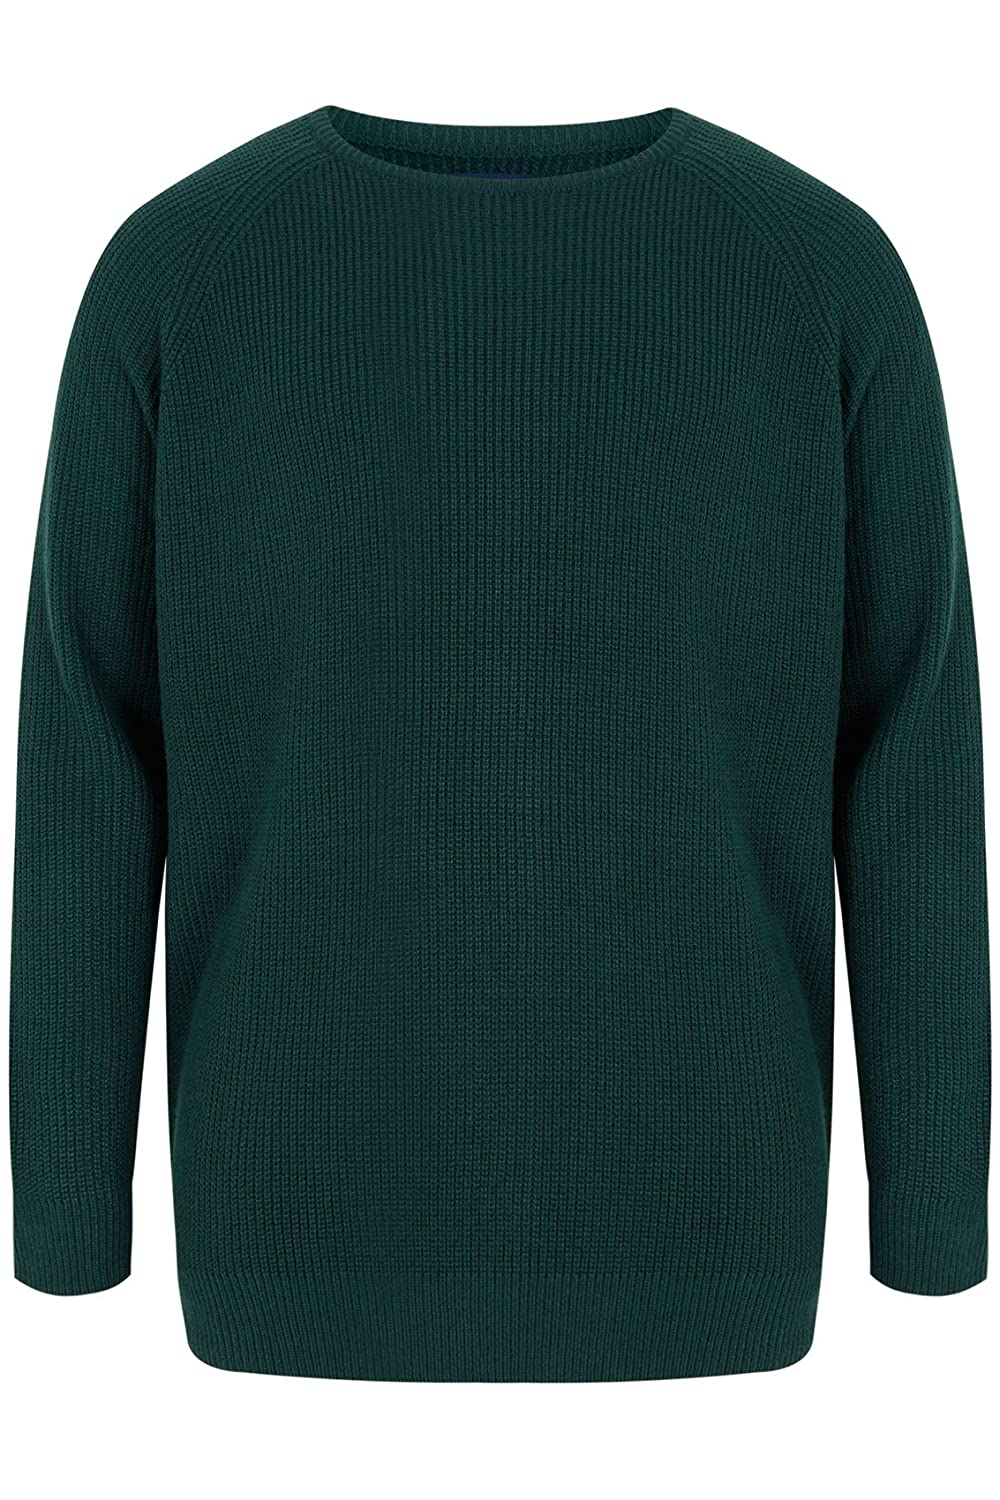 Yoursclothing Mens Crew Neck Rib Chunky Knit Jumper